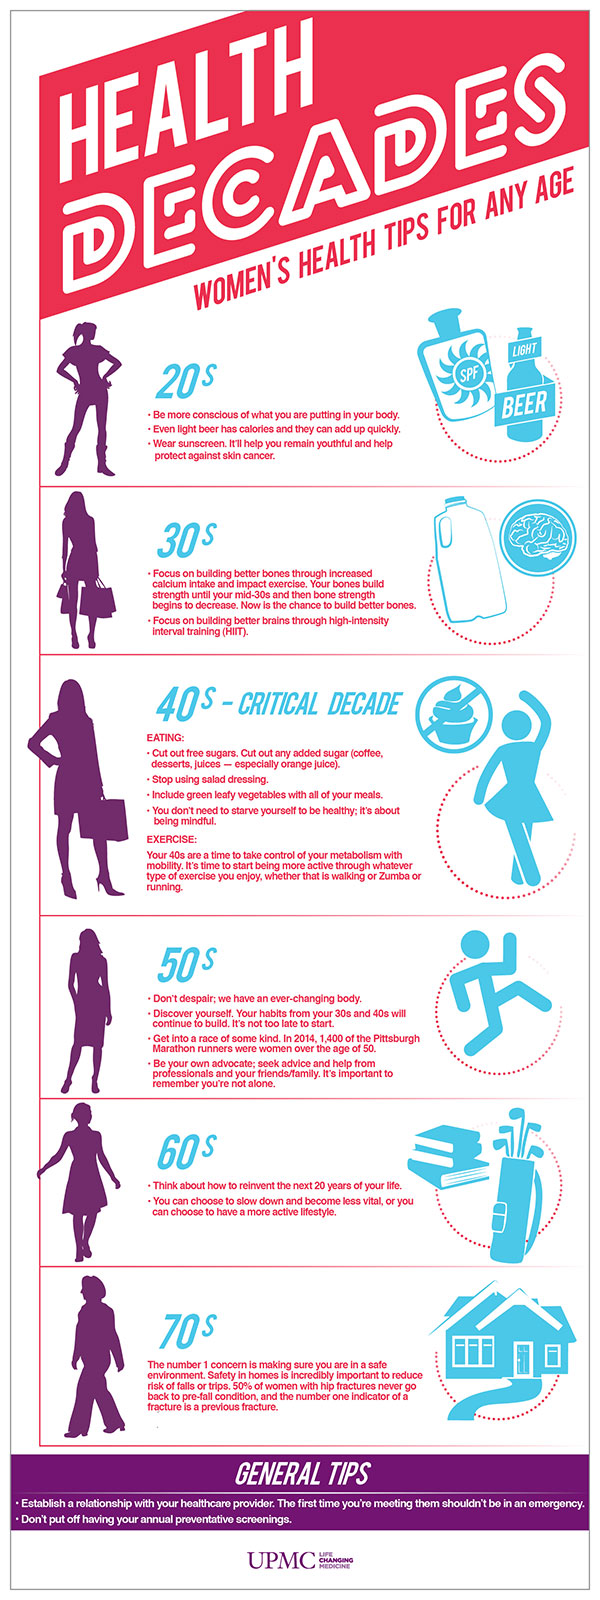 Women Health Tips for Any Age